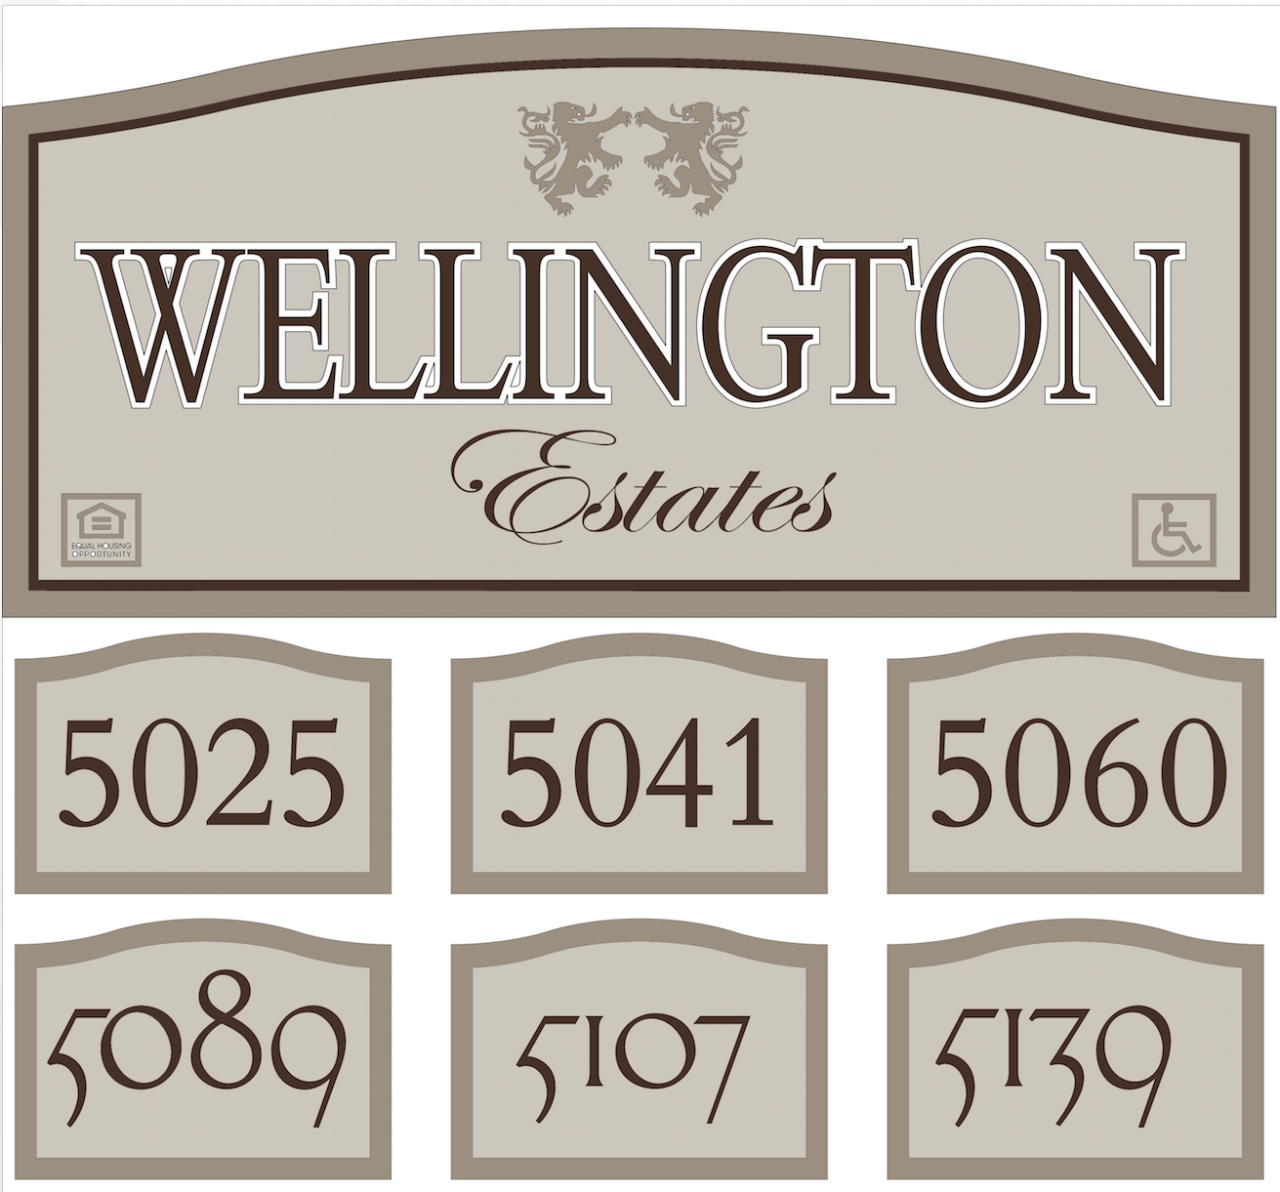 numbers signs for wellington estates subdivision outdoor signage